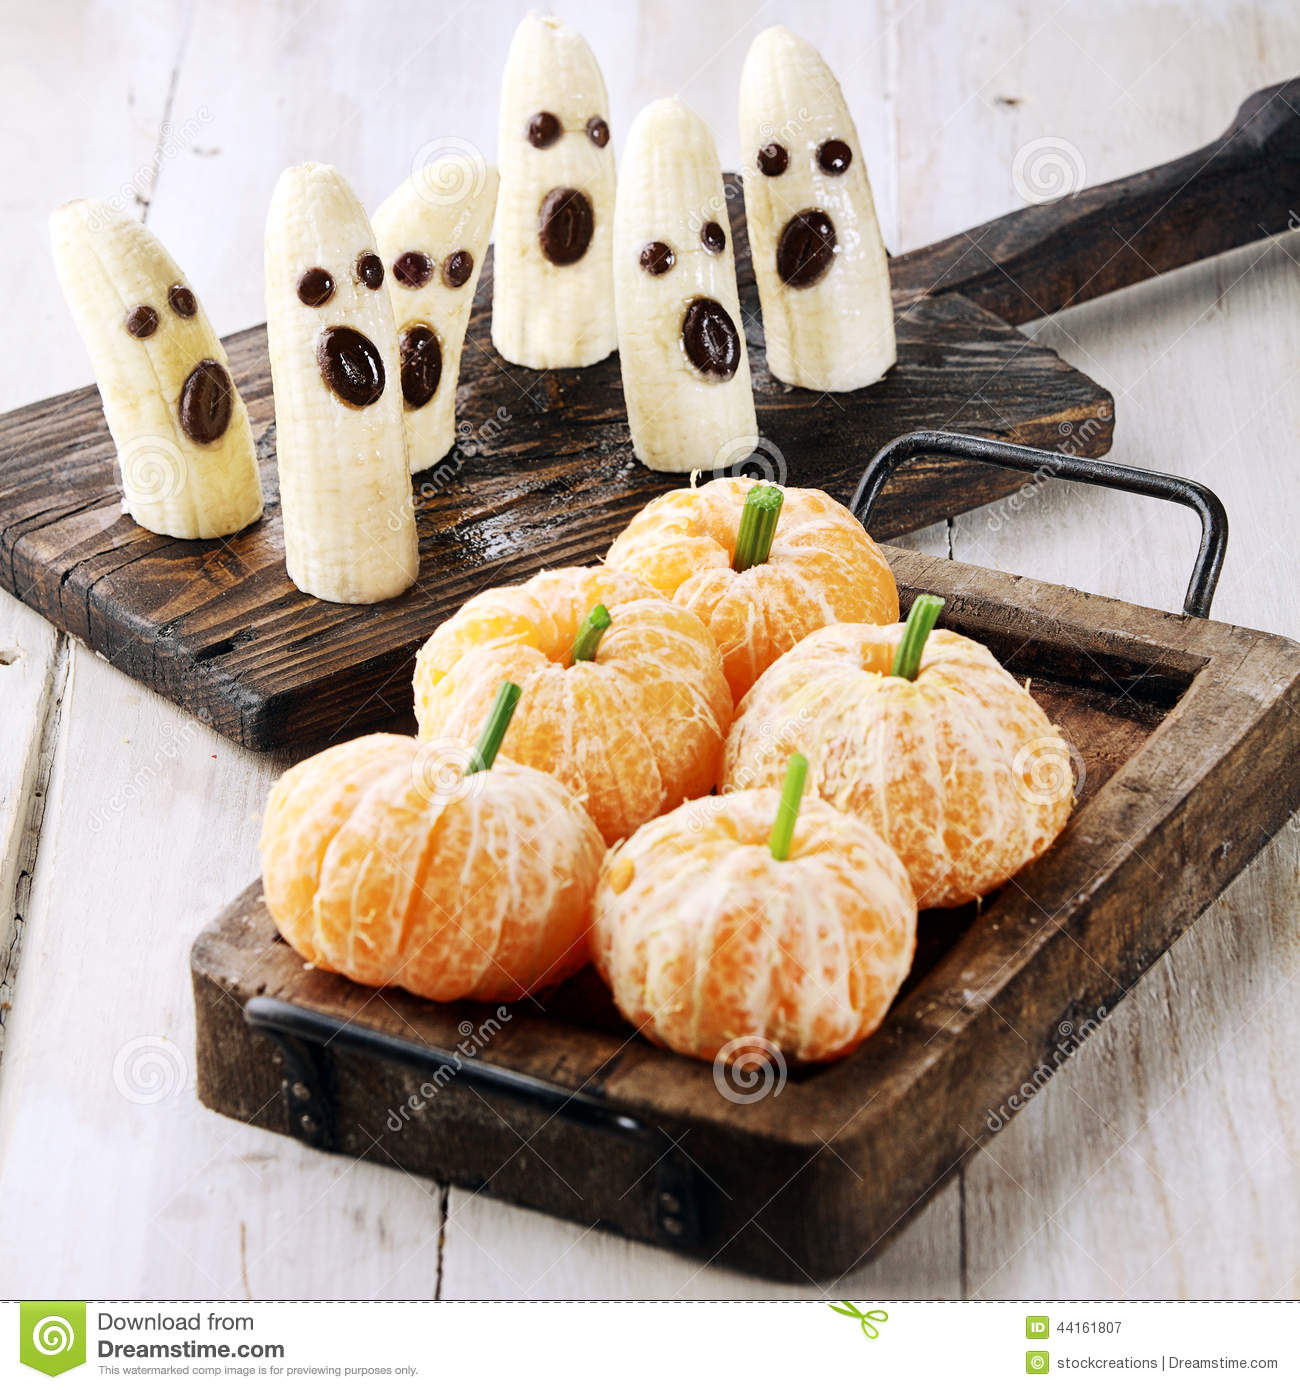 Healthy Halloween Treats Made from Fruit